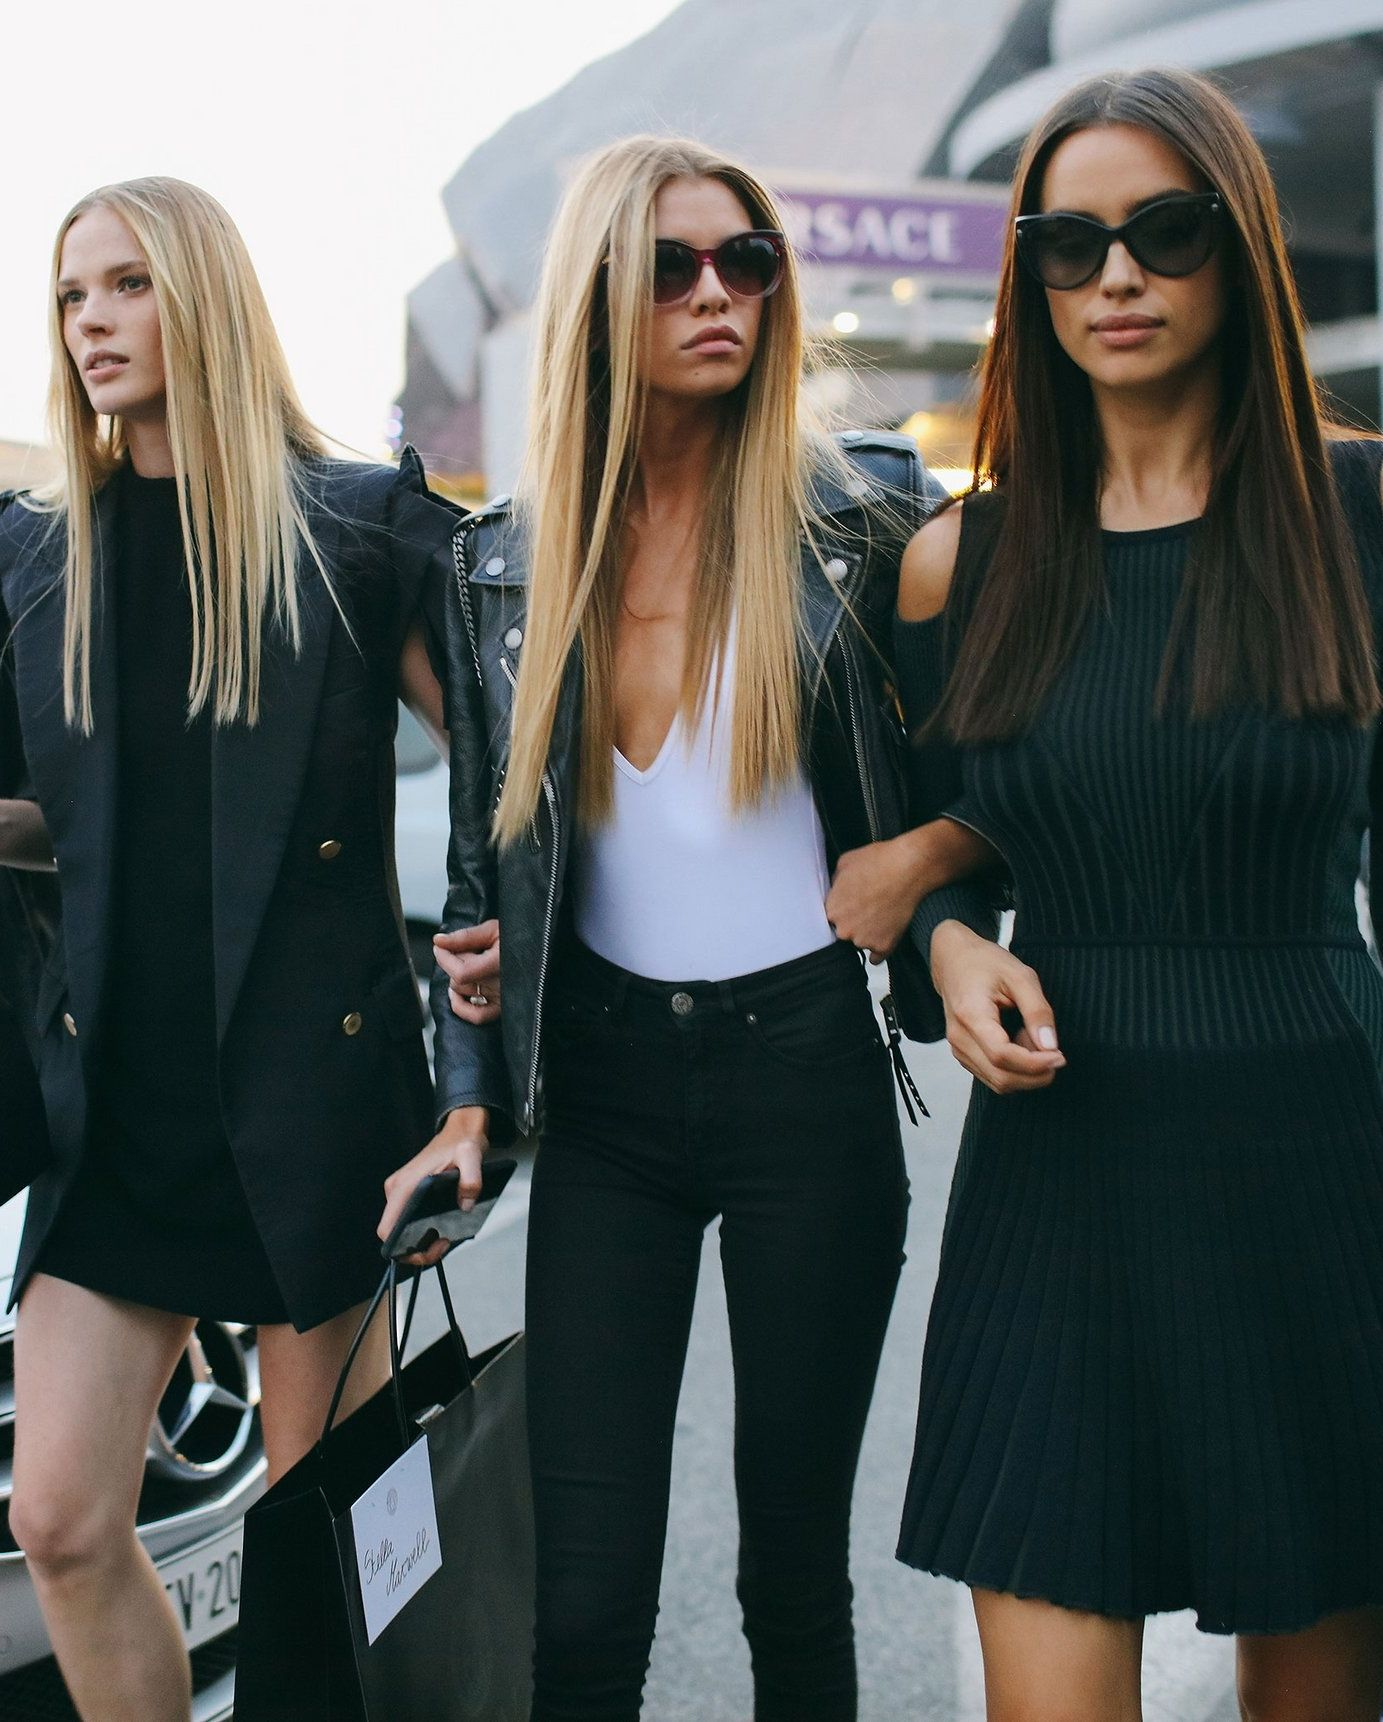 Anne V, Stella Maxwell, and Irina Shayk spotted on the street at Milan Fashion Week. Photographed by Phil Oh.